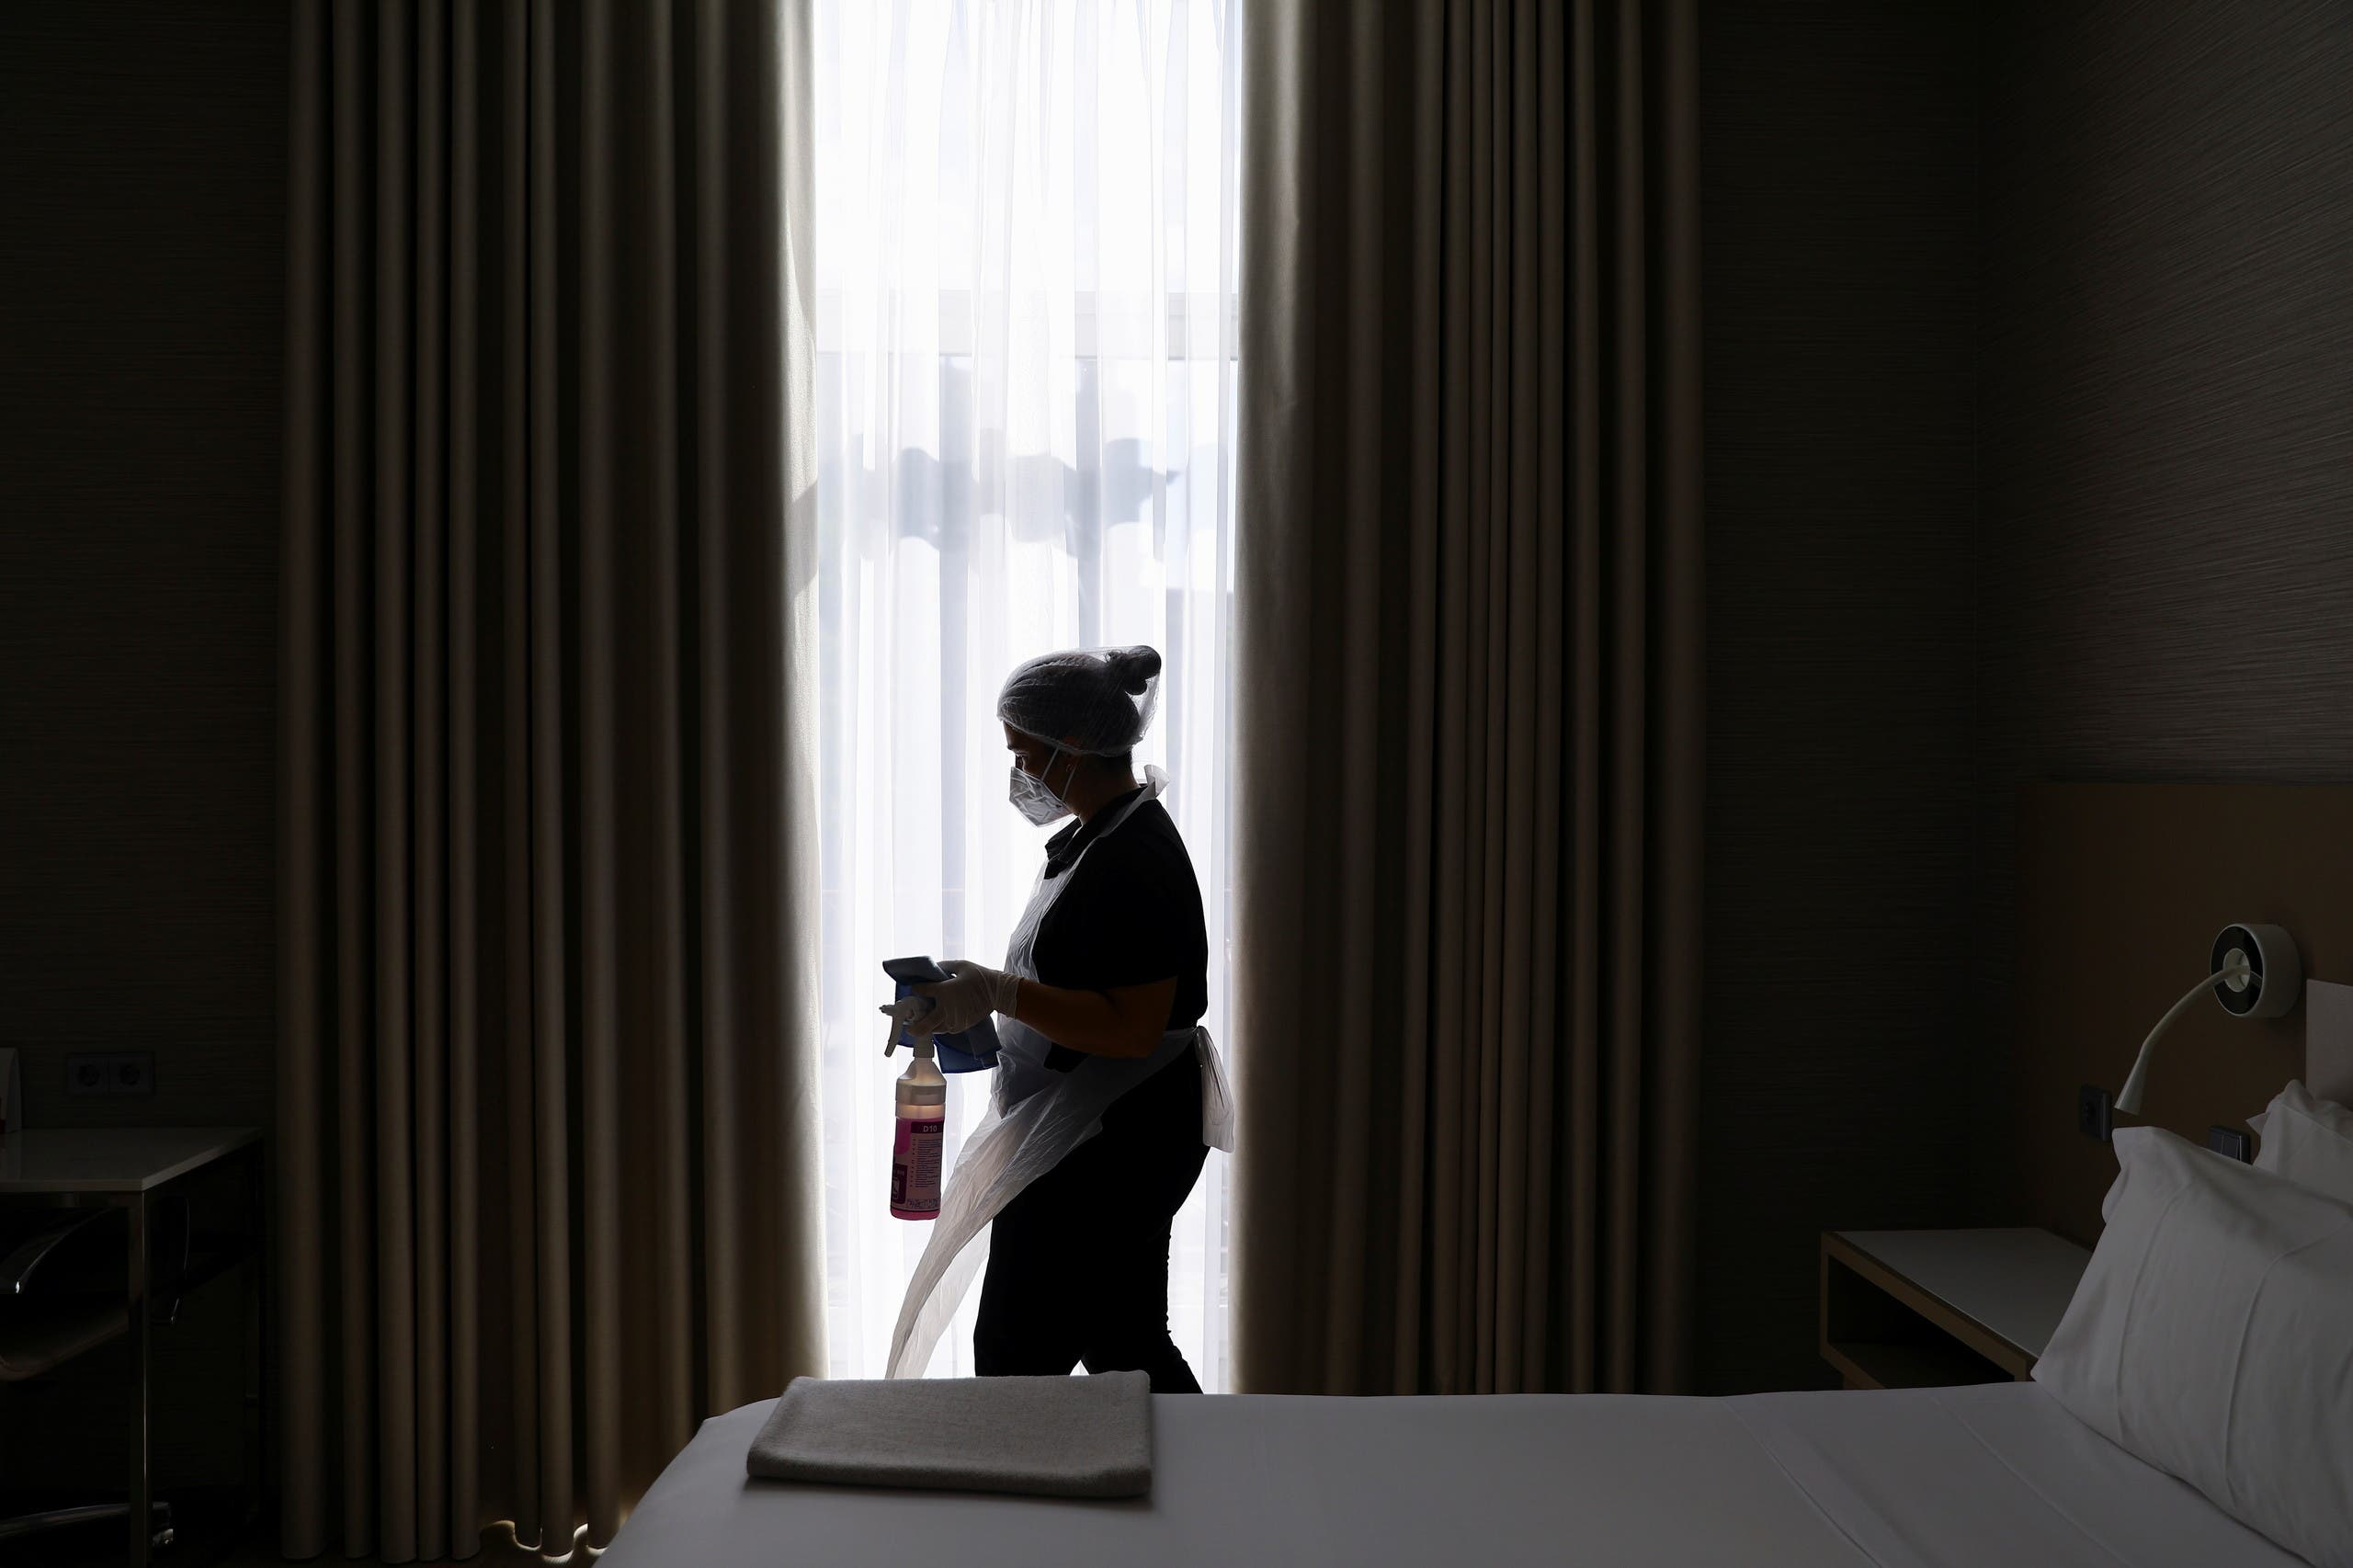 Cleaning staff is seen at a room at the NH Collection Hotel as thousands of English fans make their way to Portugal's northern city of Porto for the Champions League's final match and hotels and bars hope for a boost after the tourism sector was ravaged by the coronavirus disease (COVID-19) pandemic, in Porto, Portugal May 26, 2021. (Reuters)